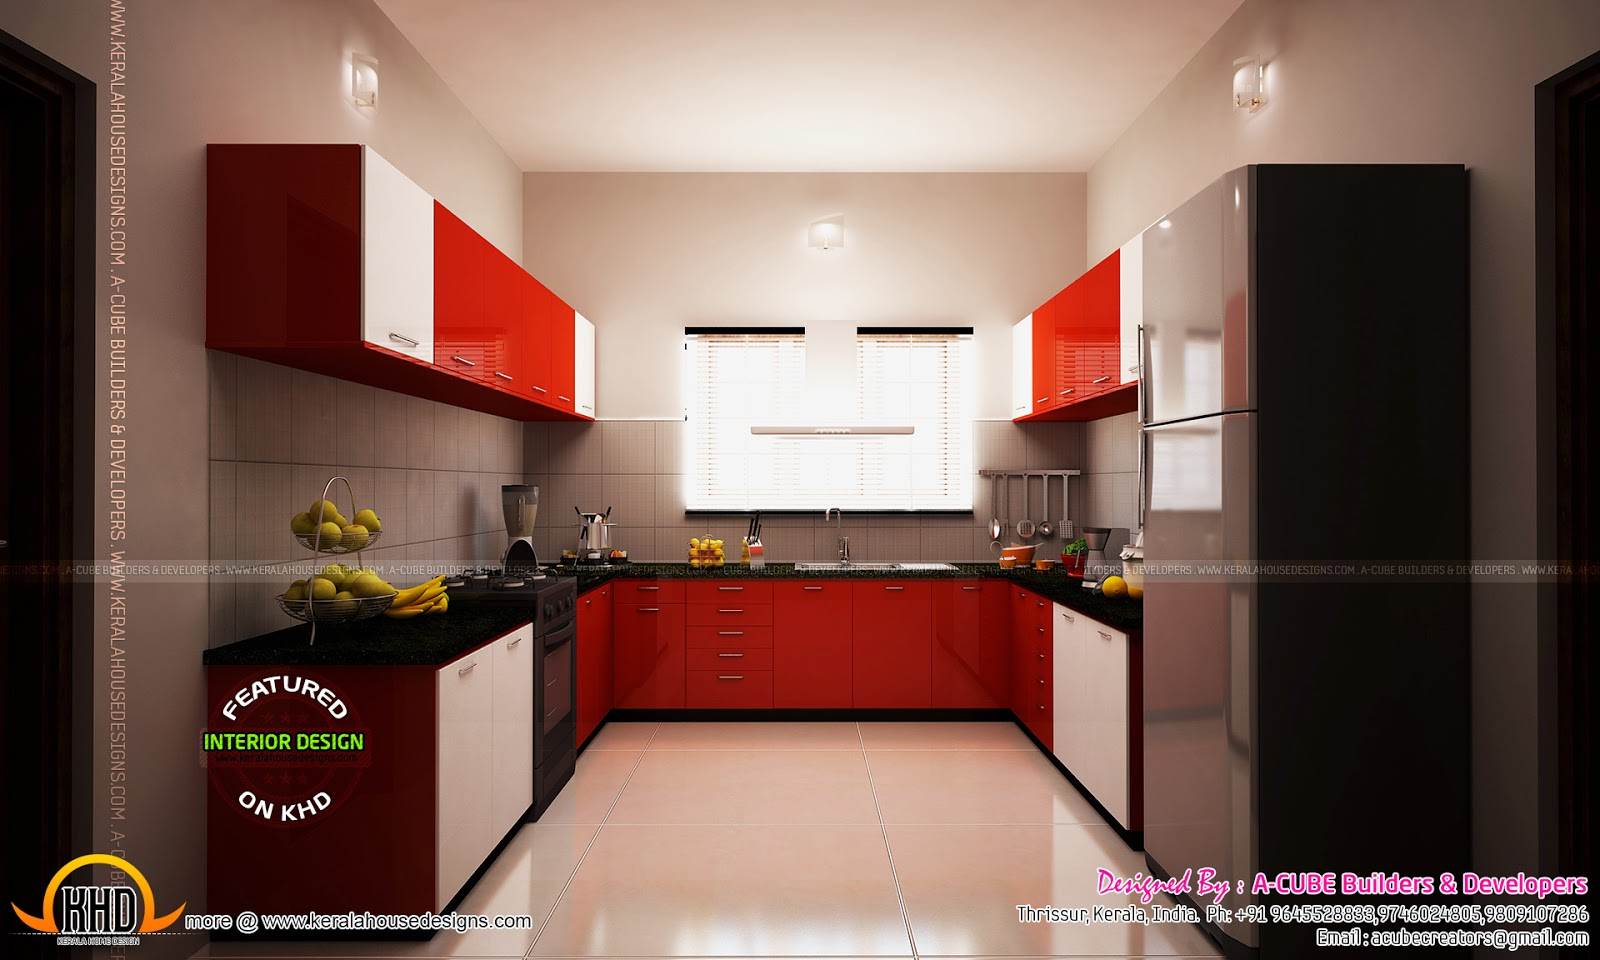 Modern Kerala Interior Designs Kerala Home Design And